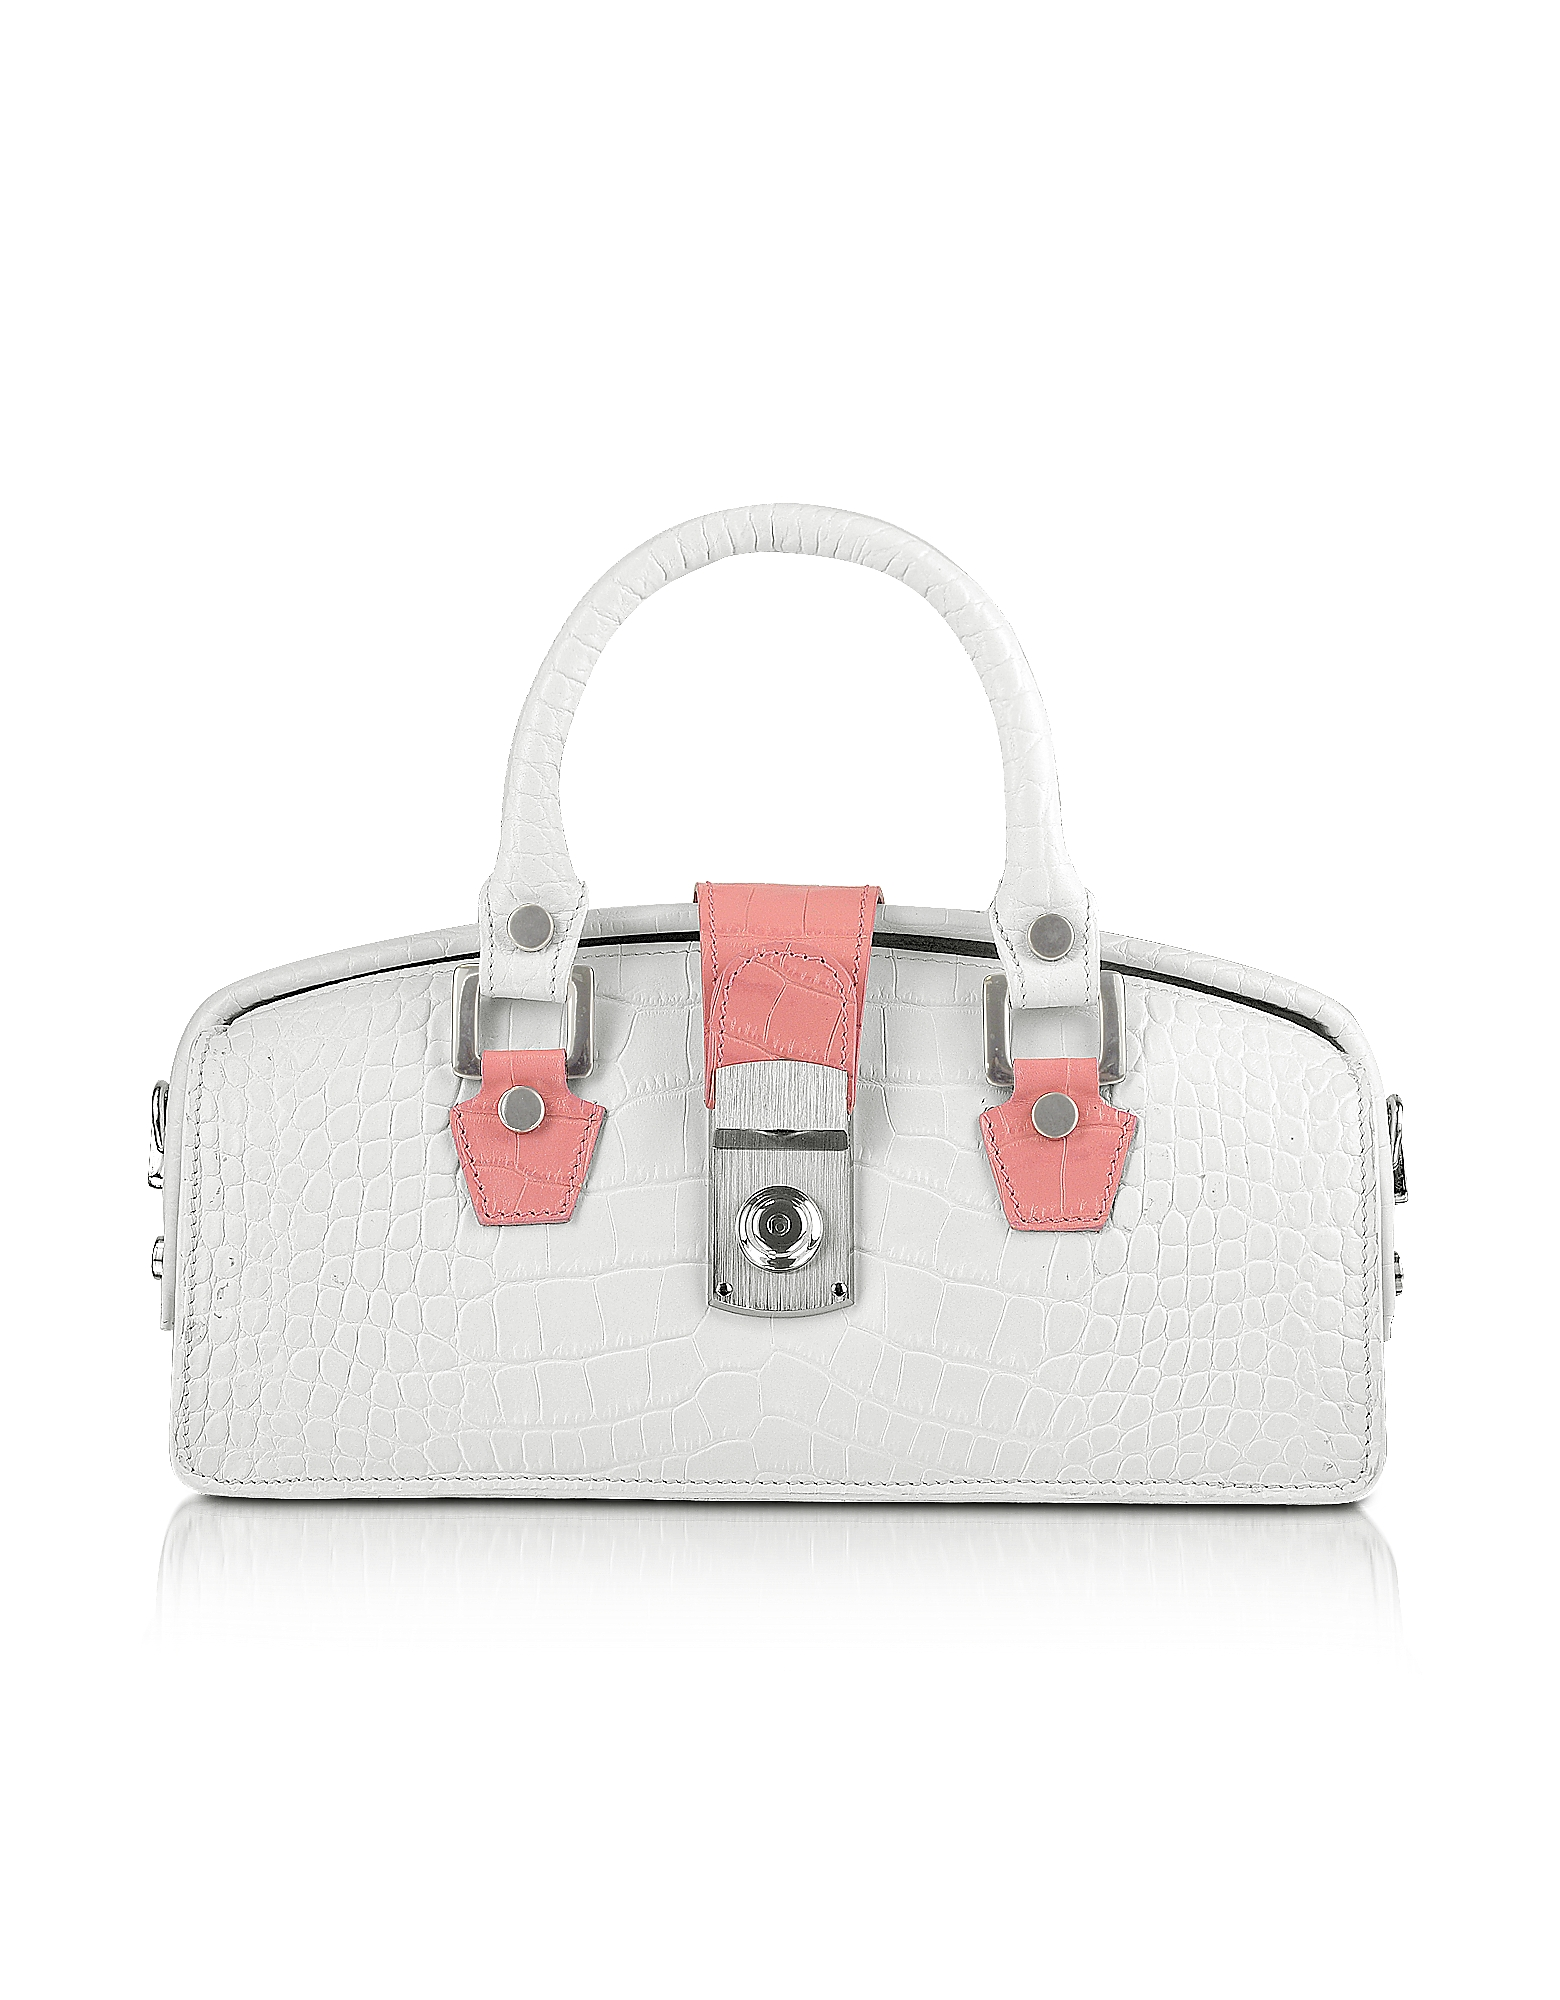 L.A.P.A. Handbags, Ivory Croco-embossed Mini Doctor Bag